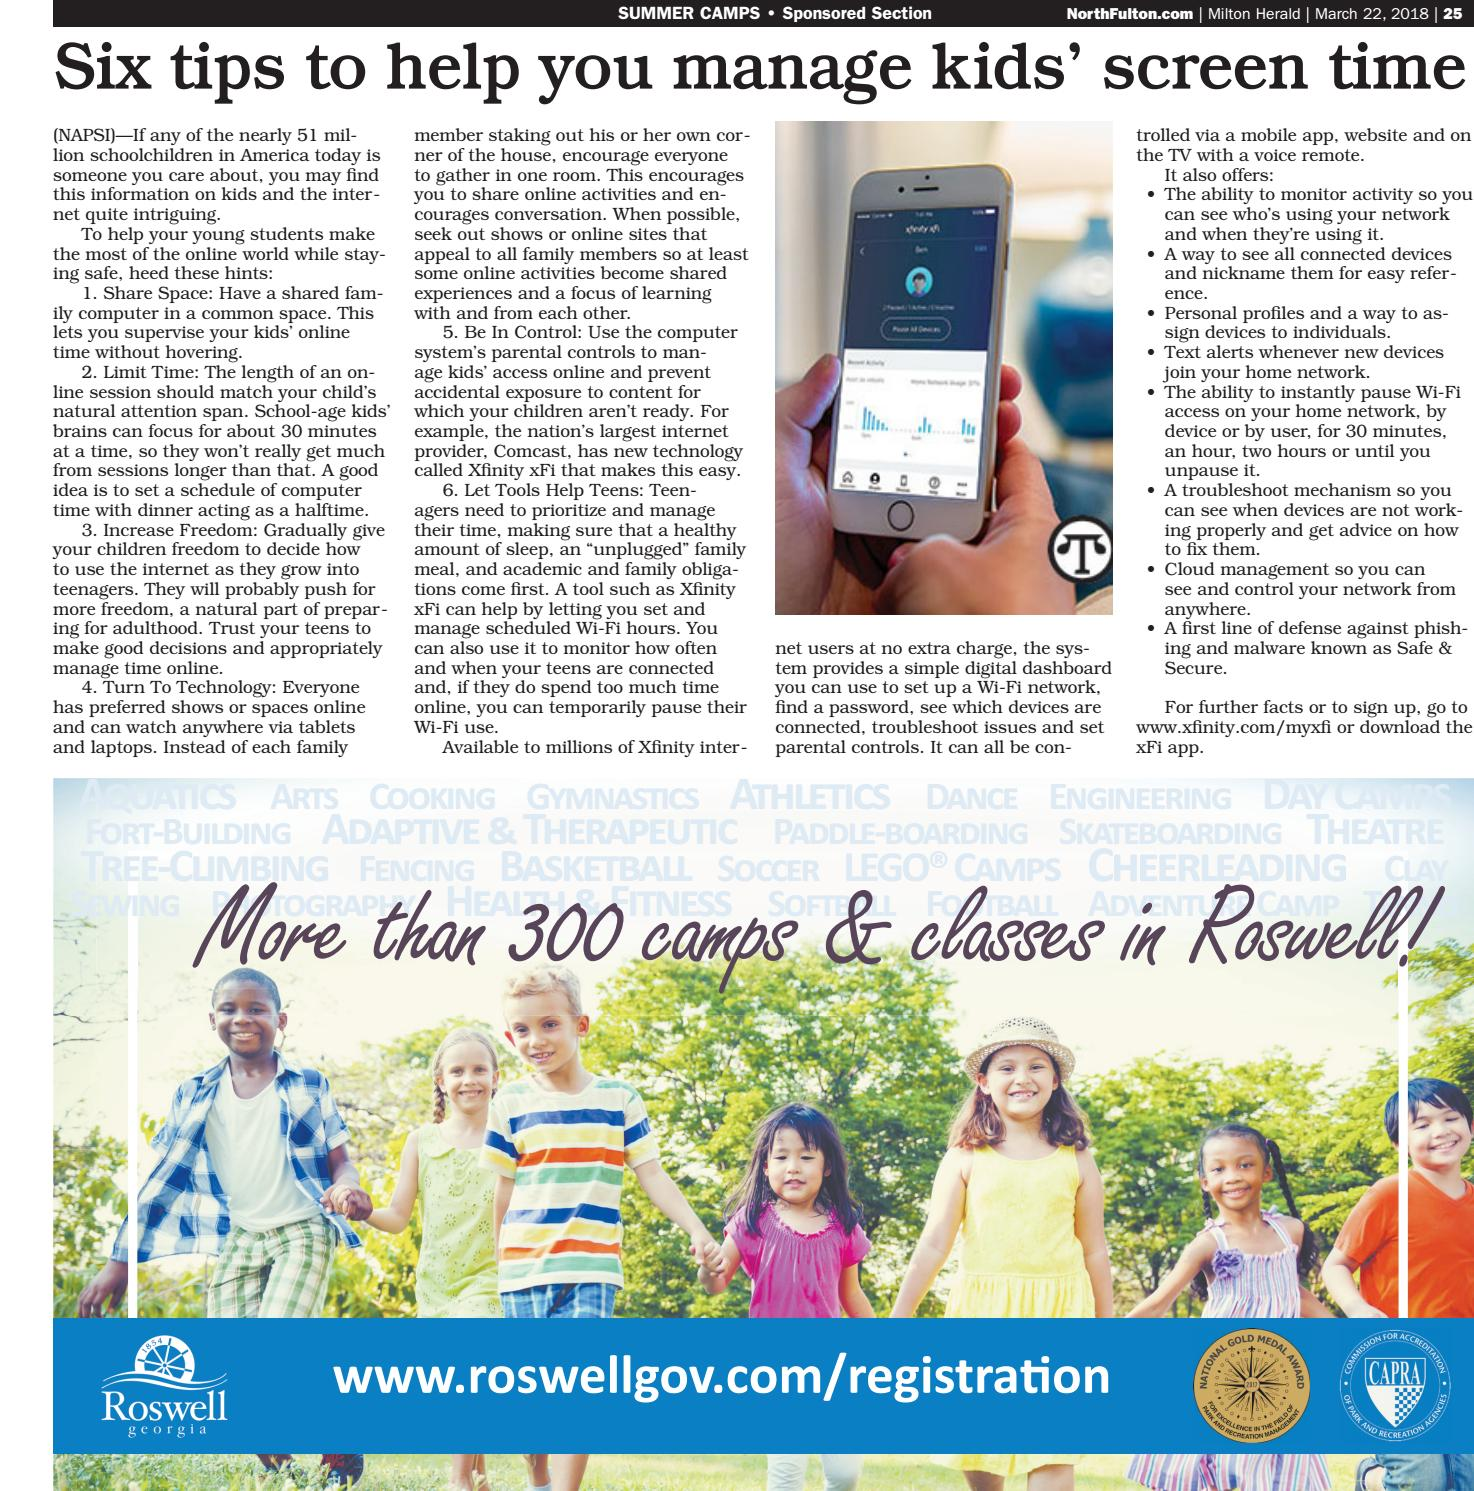 Milton Herald - March 22, 2018 by Appen Media Group - issuu